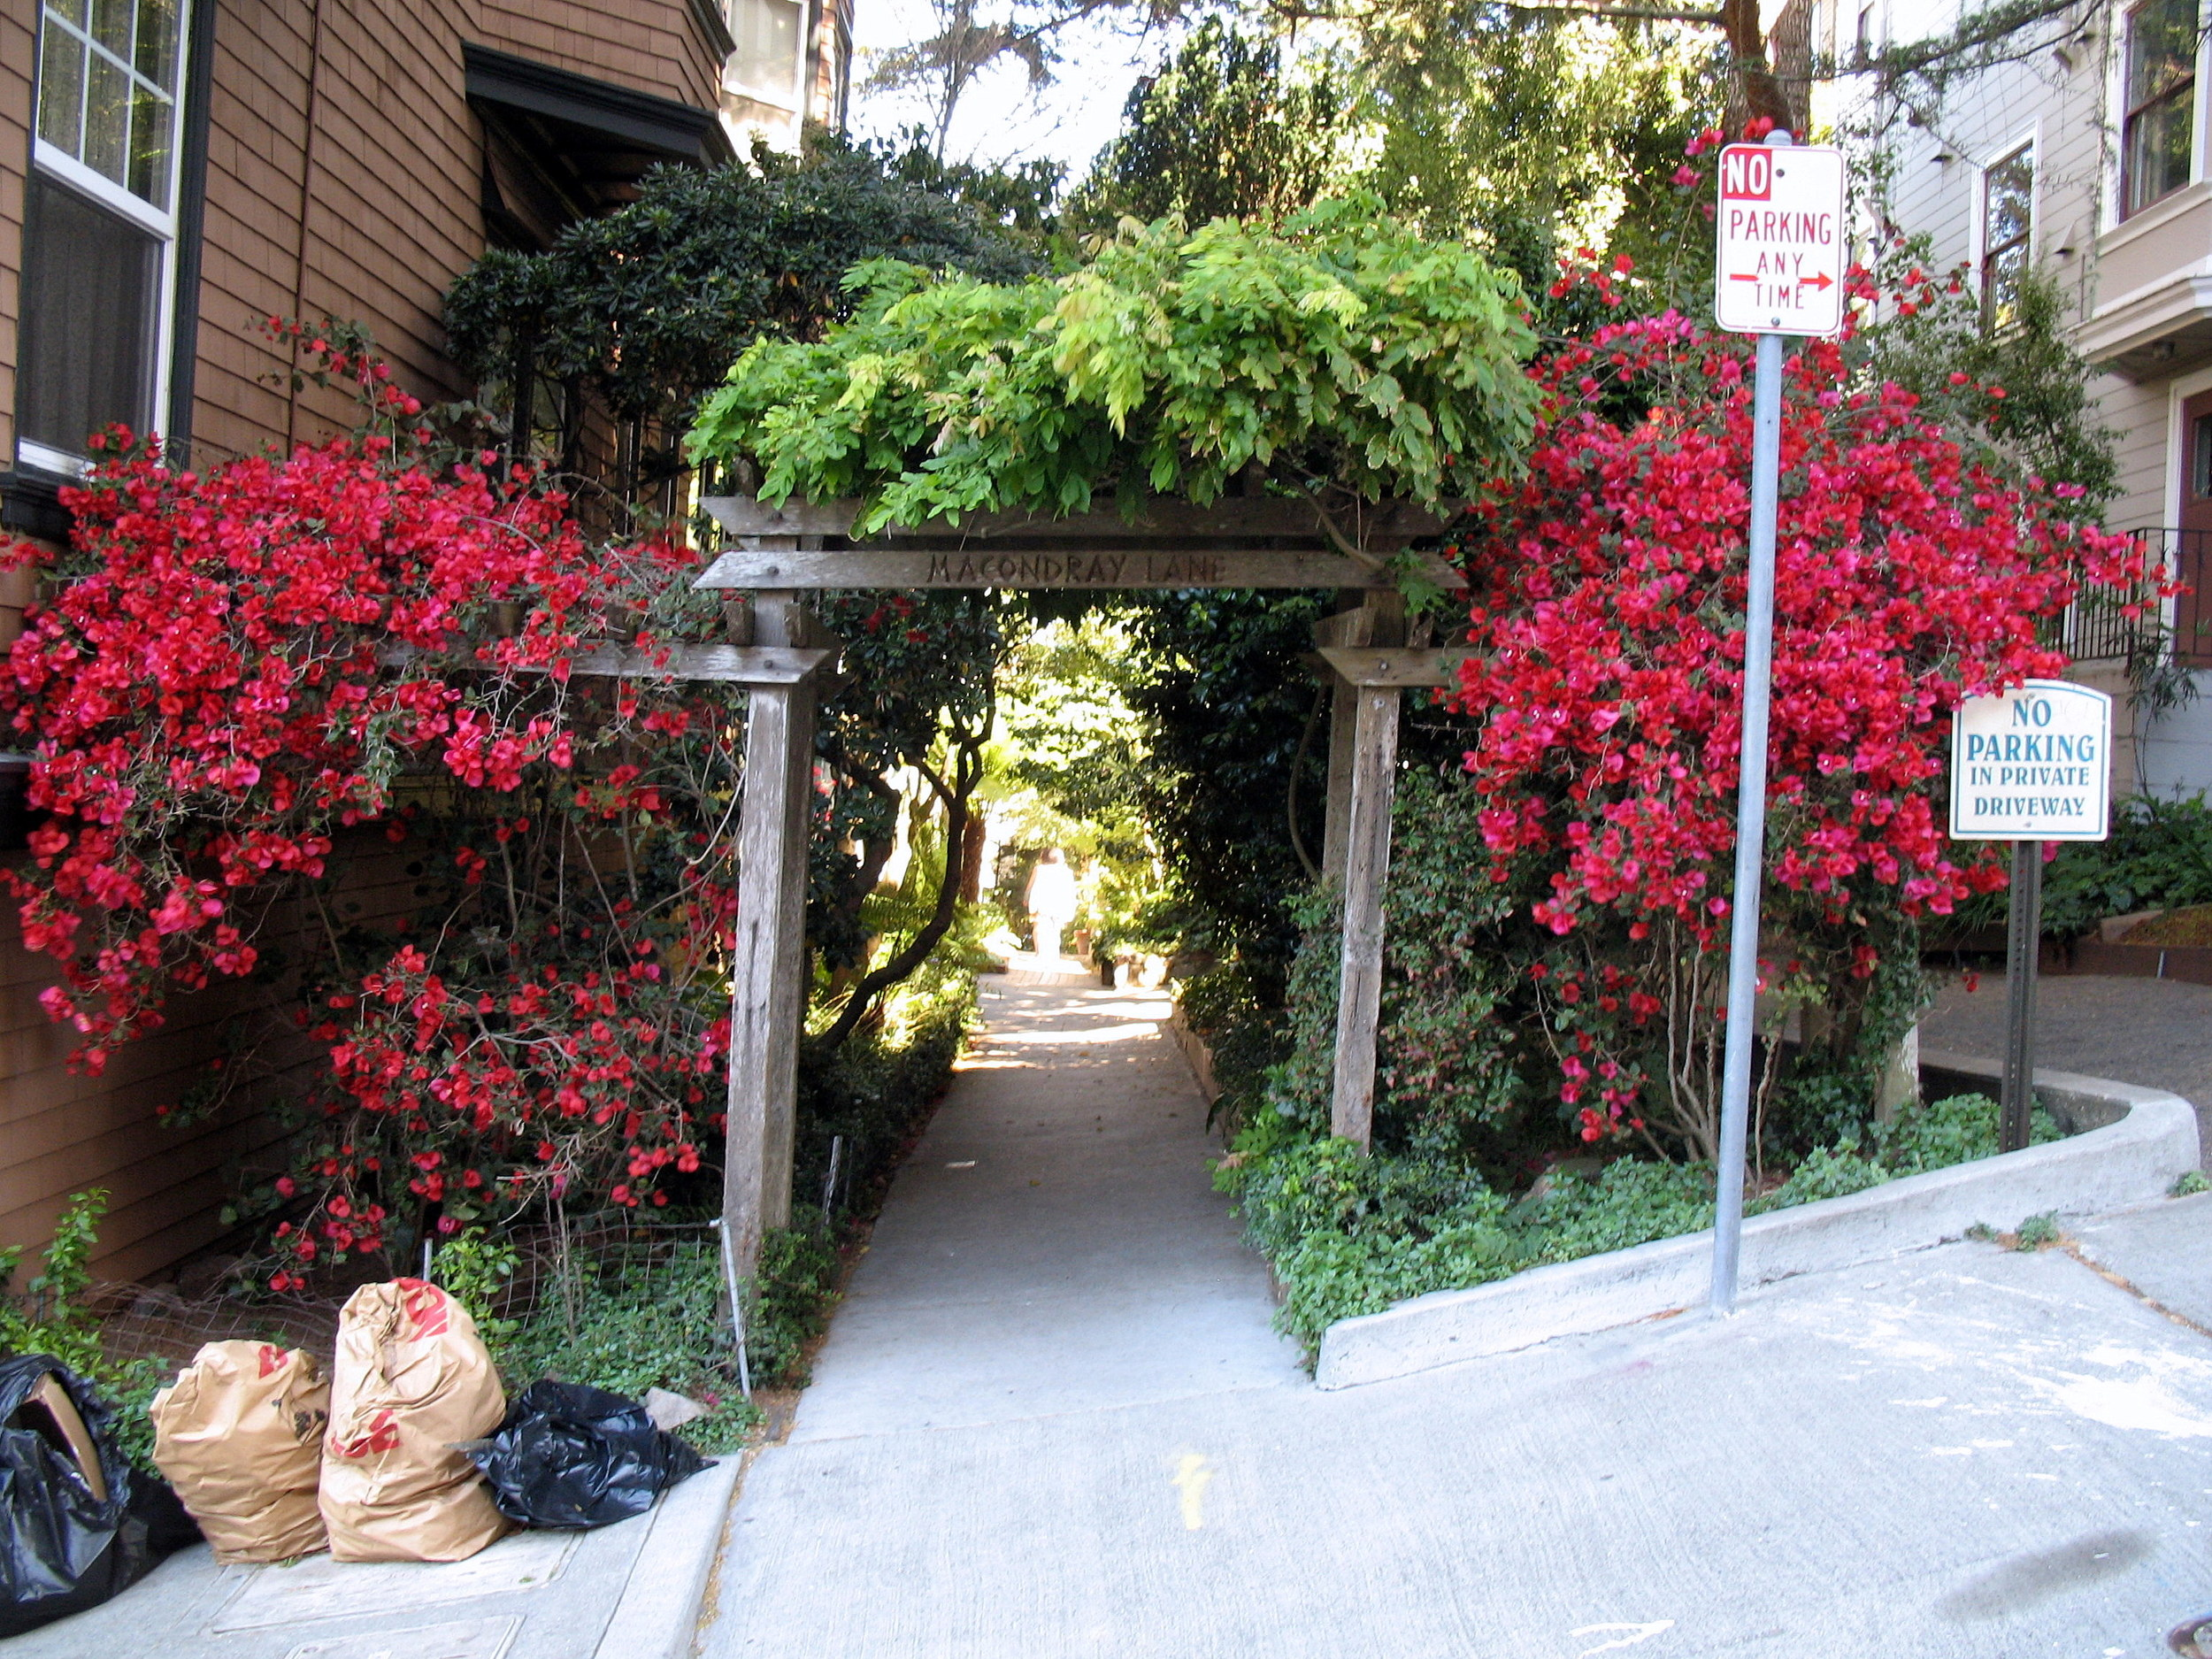 Macondray Lane is famous for inspiring Armistead Maupin's fictional 28 Barbary Lane boarding house in  Tales of the City .